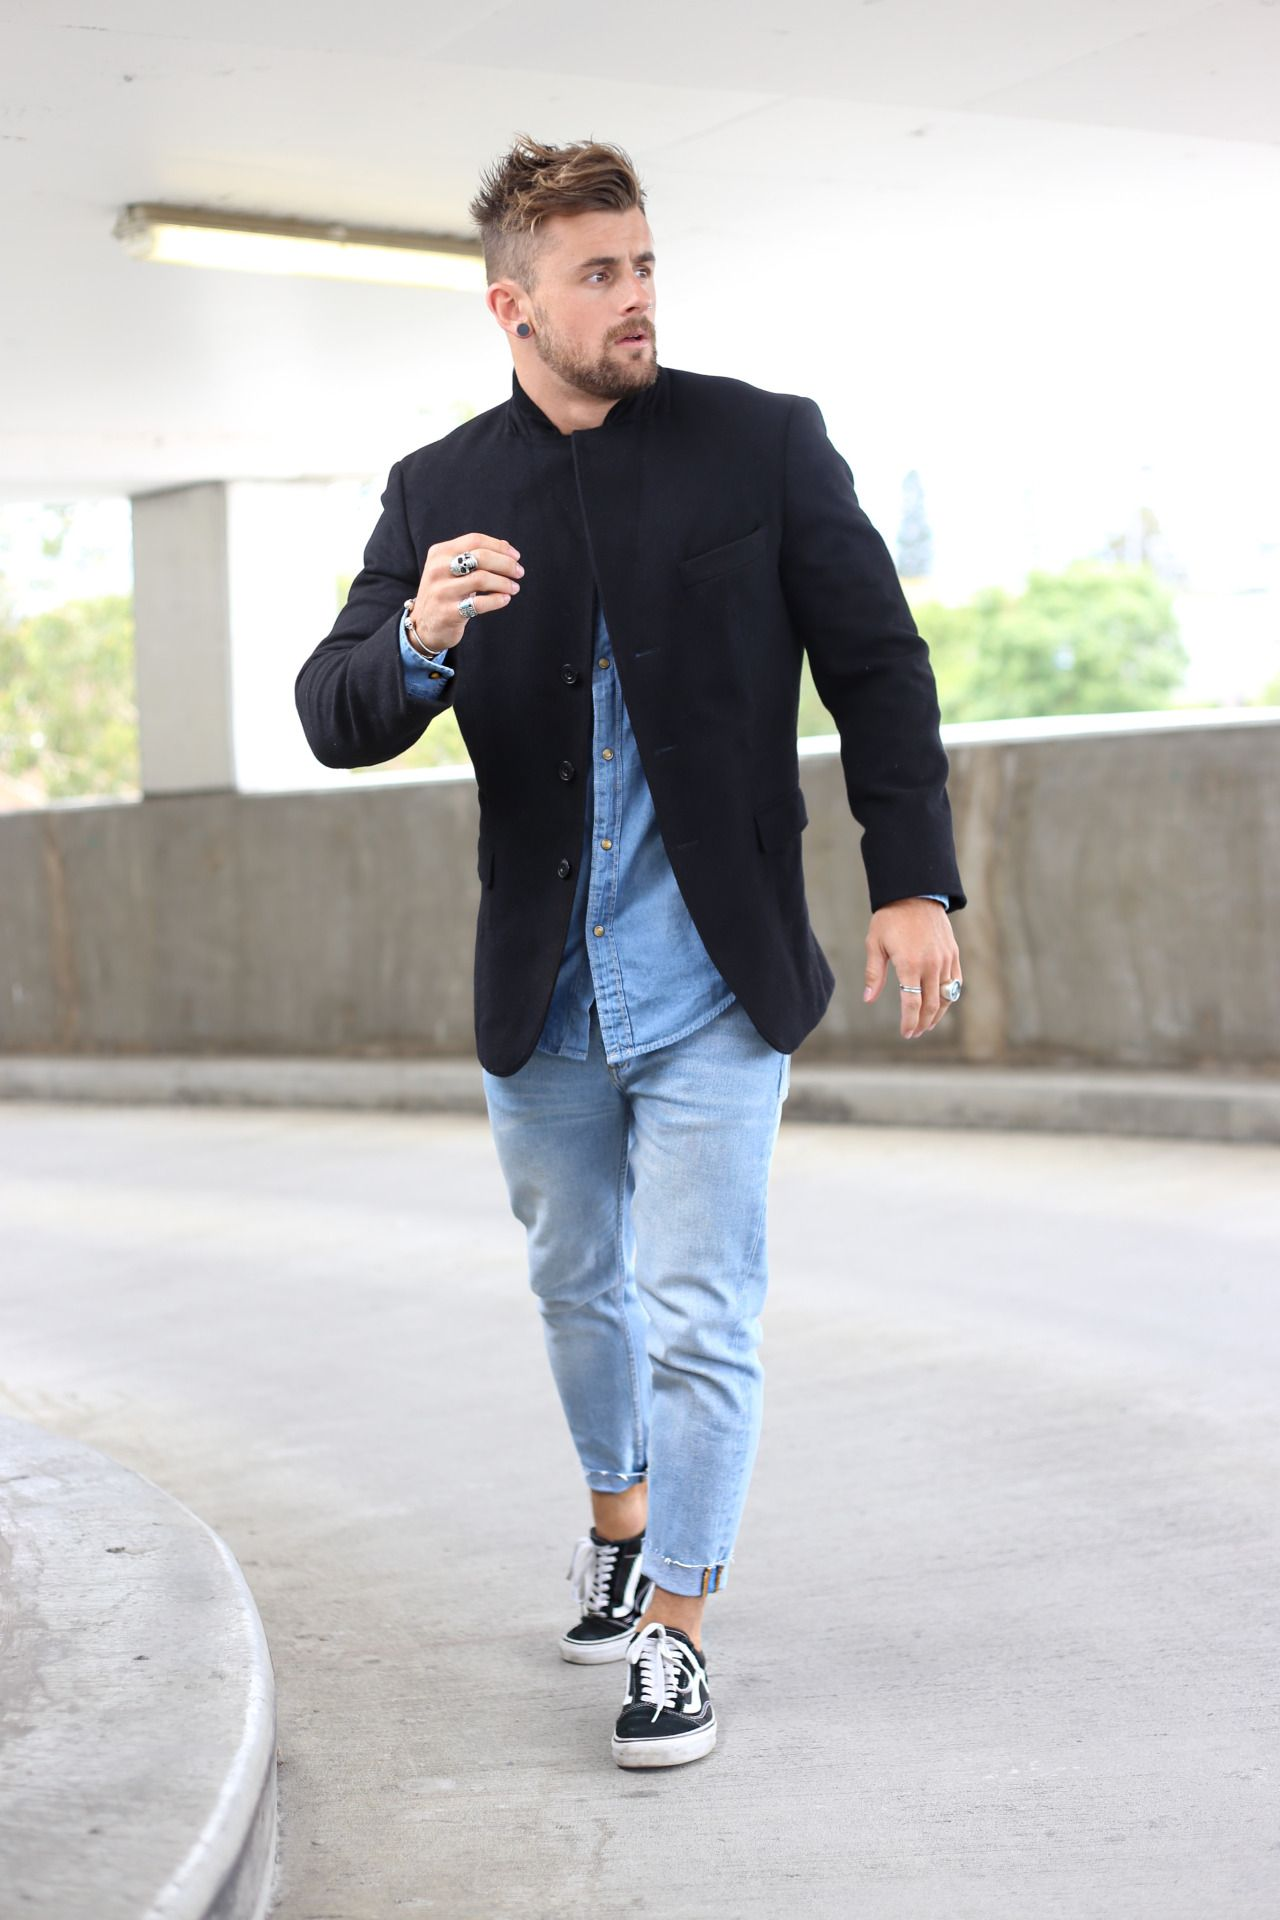 Fashionable guy photo